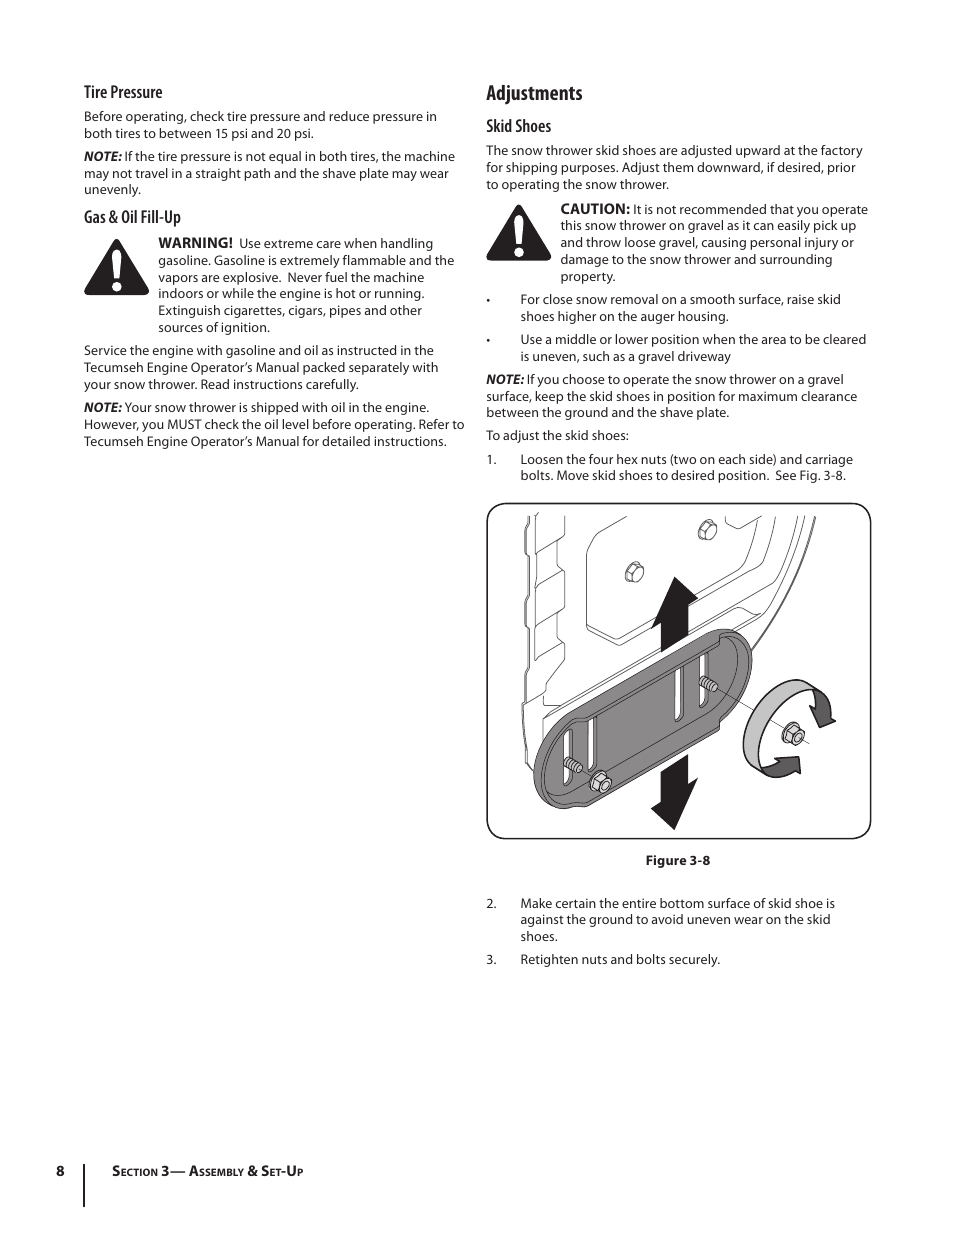 Adjustments, Tire pressure, Gas & oil fill-up | Cub Cadet 526 WE User Manual  | Page 8 / 24